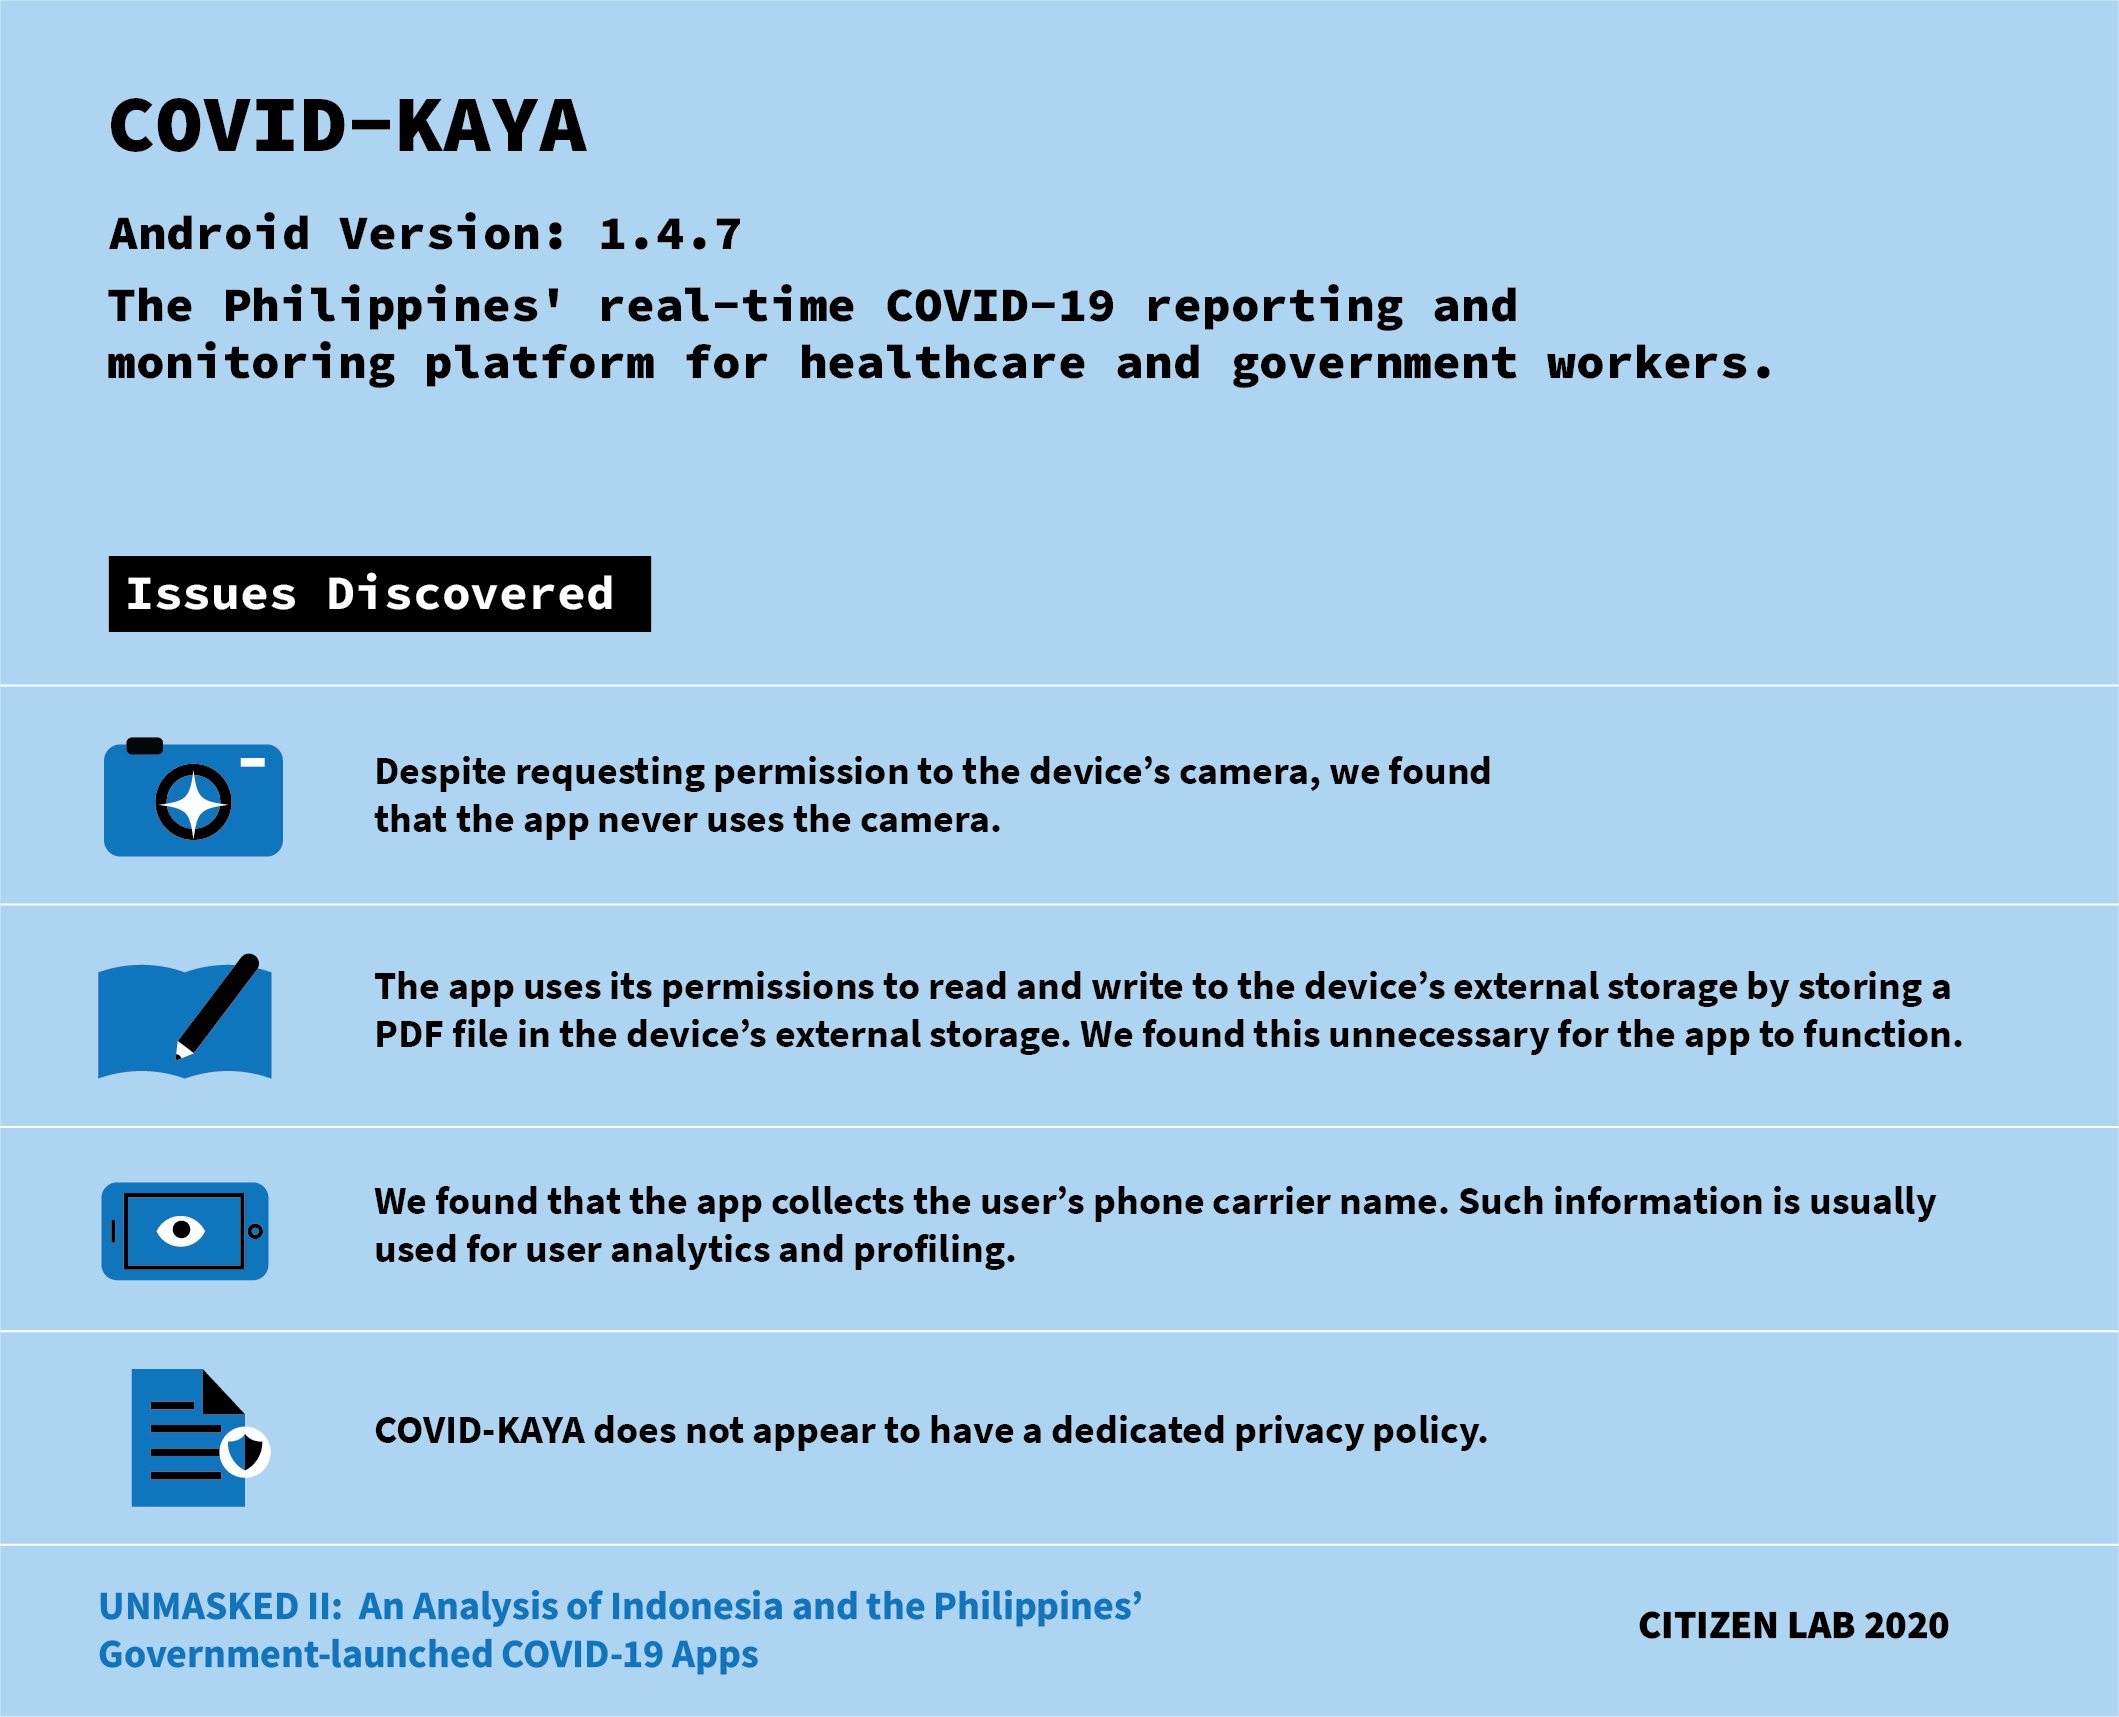 List of issues discovered on the Covid-19 app COVID-KAYA.